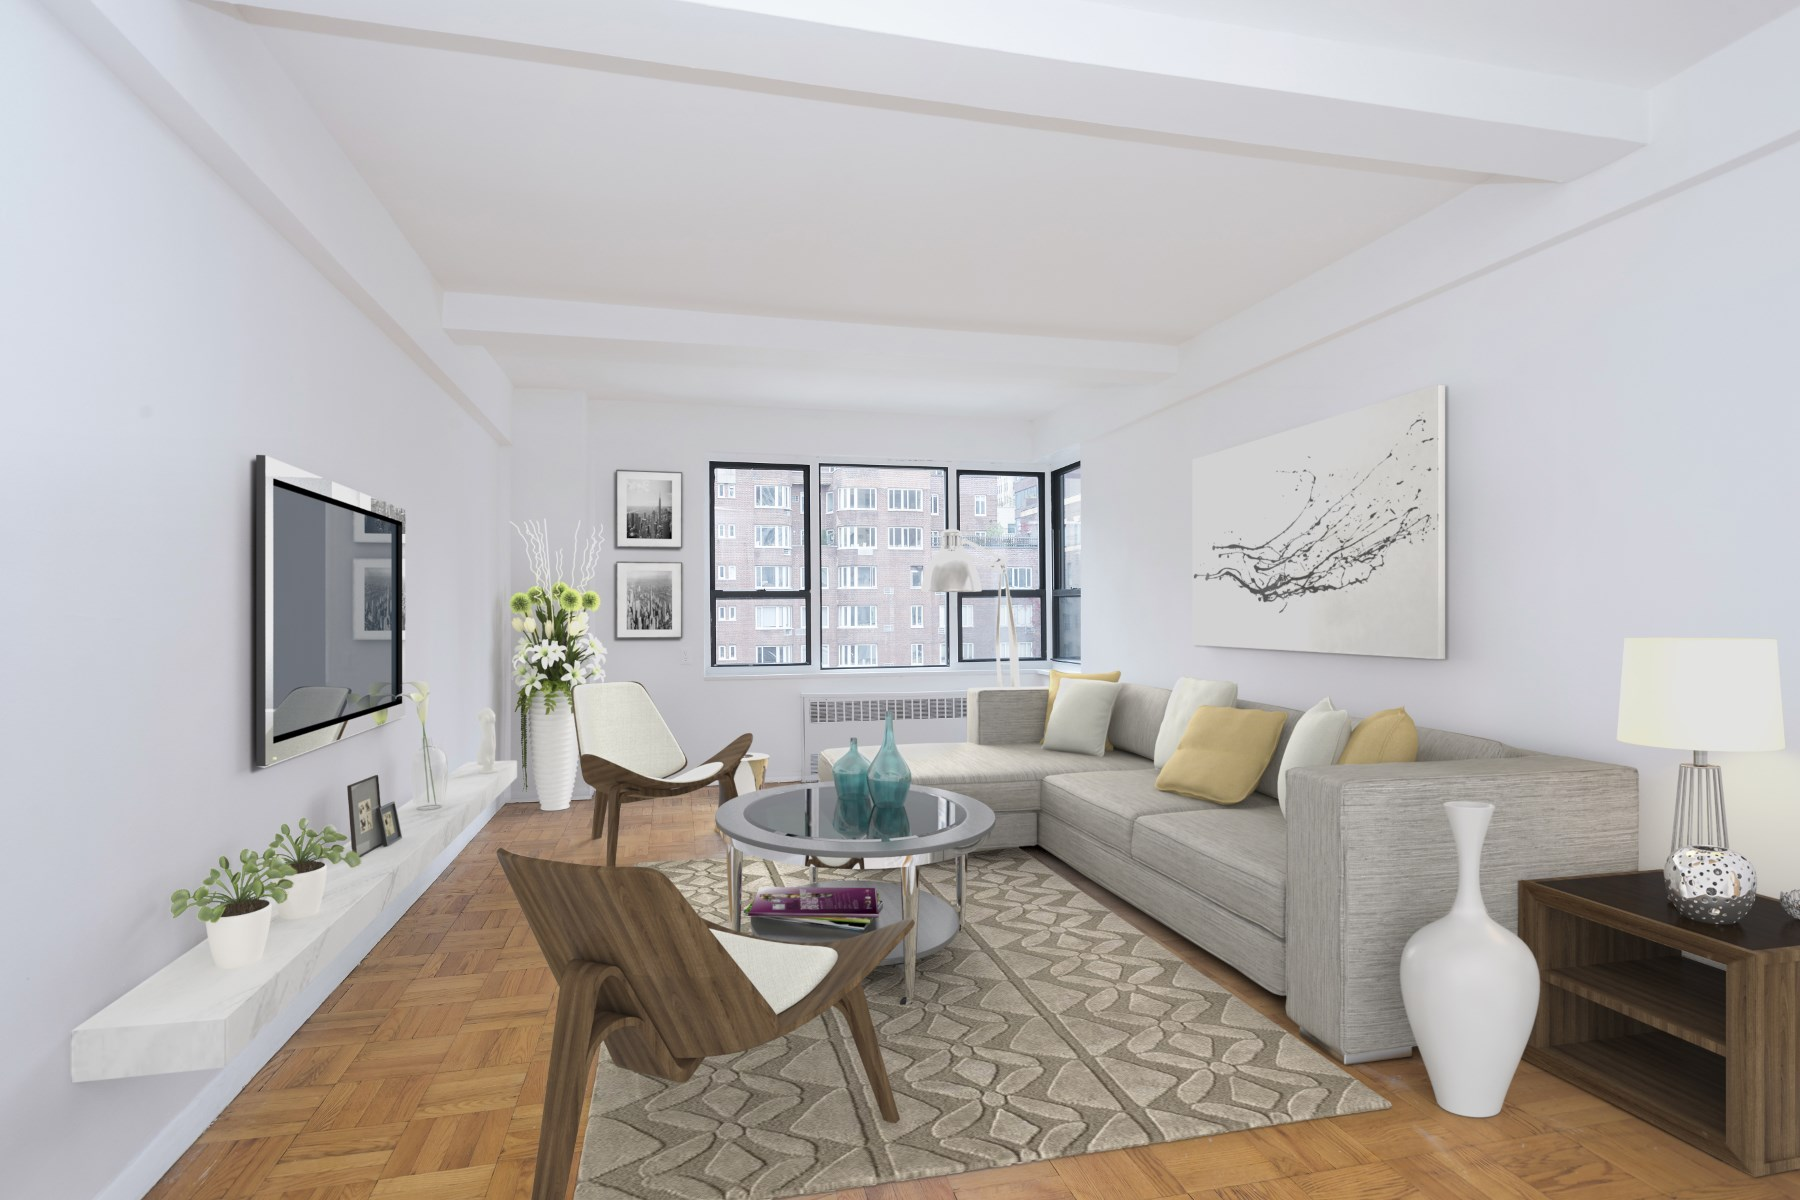 Property For Sale at 30 East 37th Street, Apt 9A